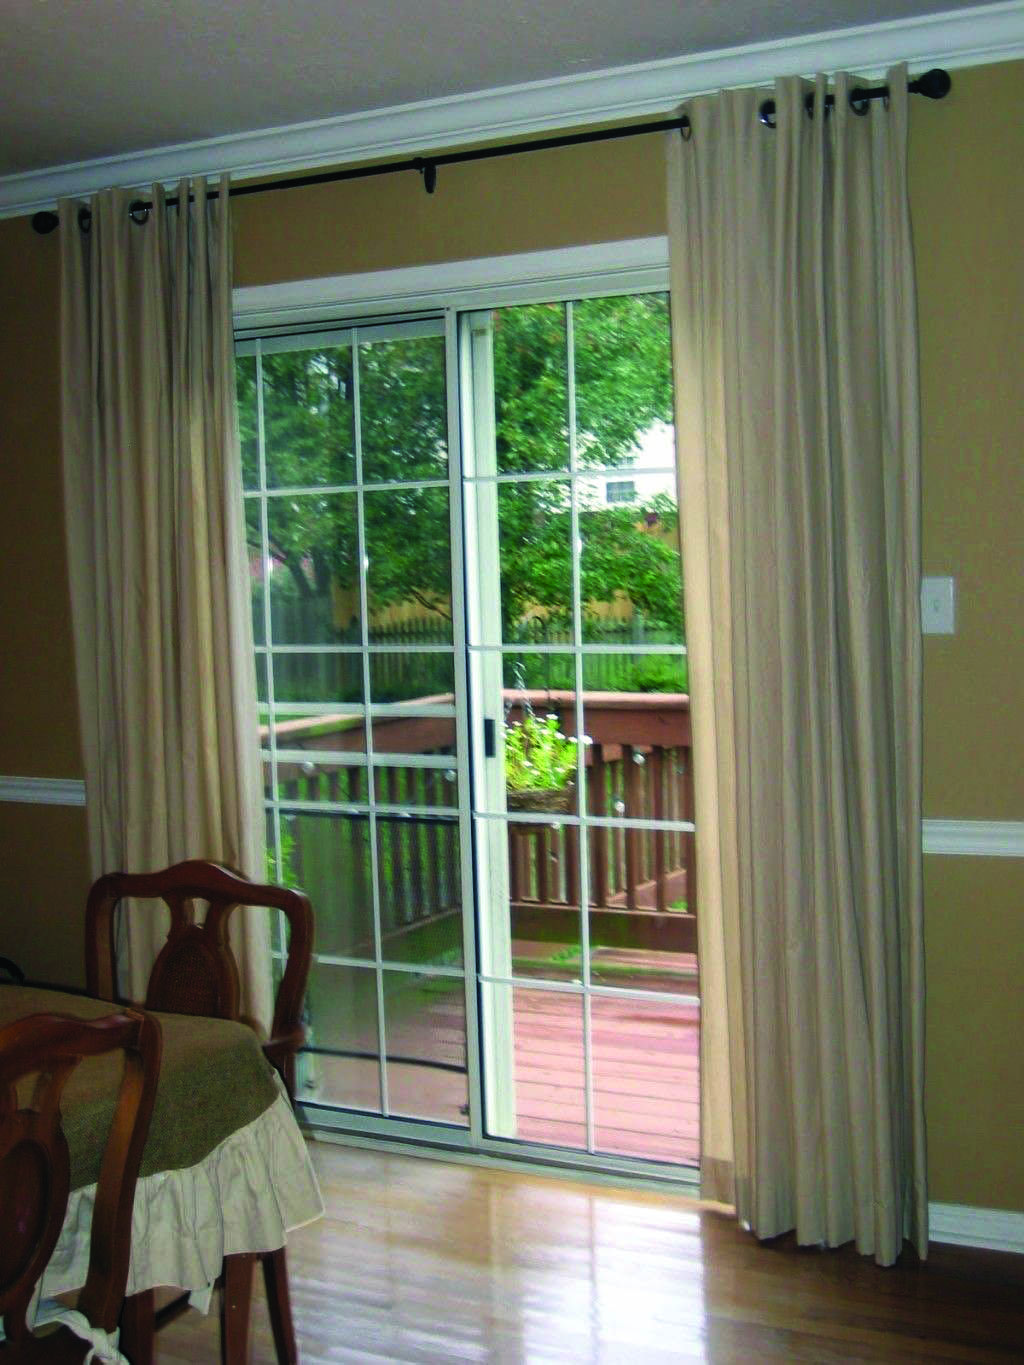 Moving Door Styles For Bedroom Sliding Glass Door Window Treatments Sliding Glass Door Window Patio Door Window Treatments